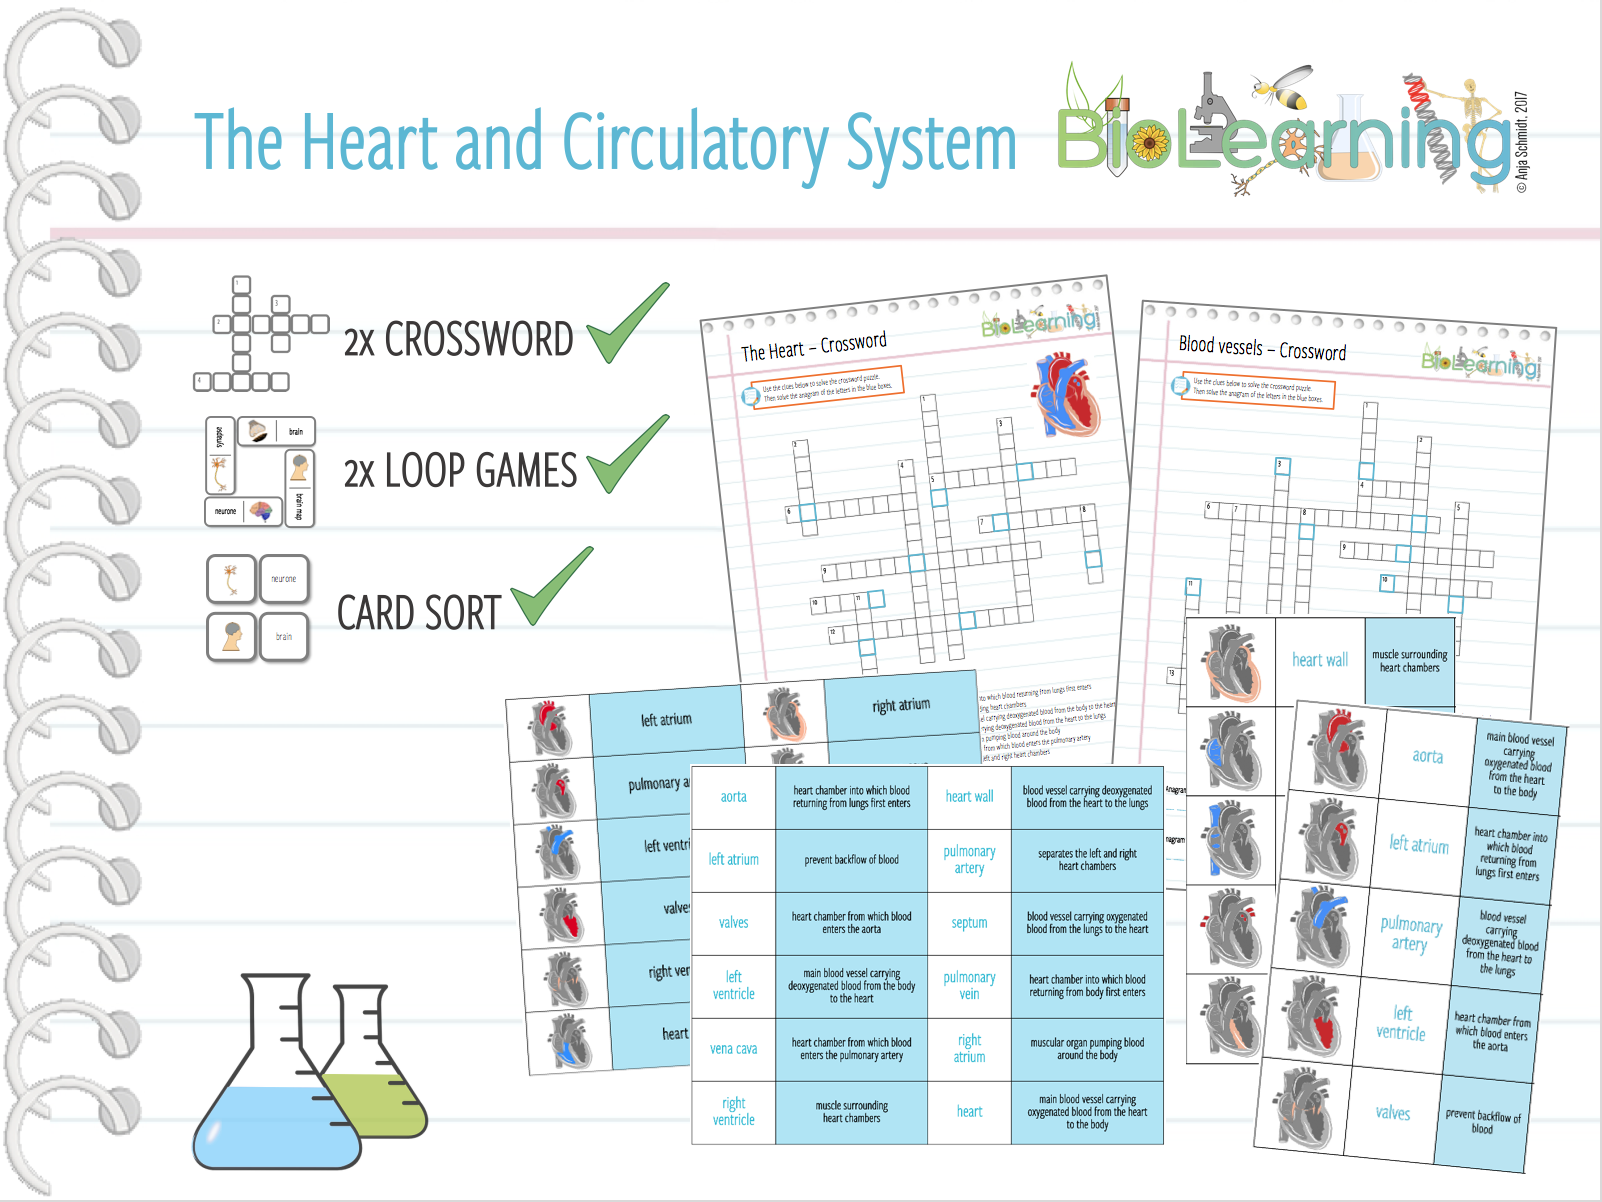 The Heart and Circulatory System 5x -  Loop Games, Crosswords, Card Sort